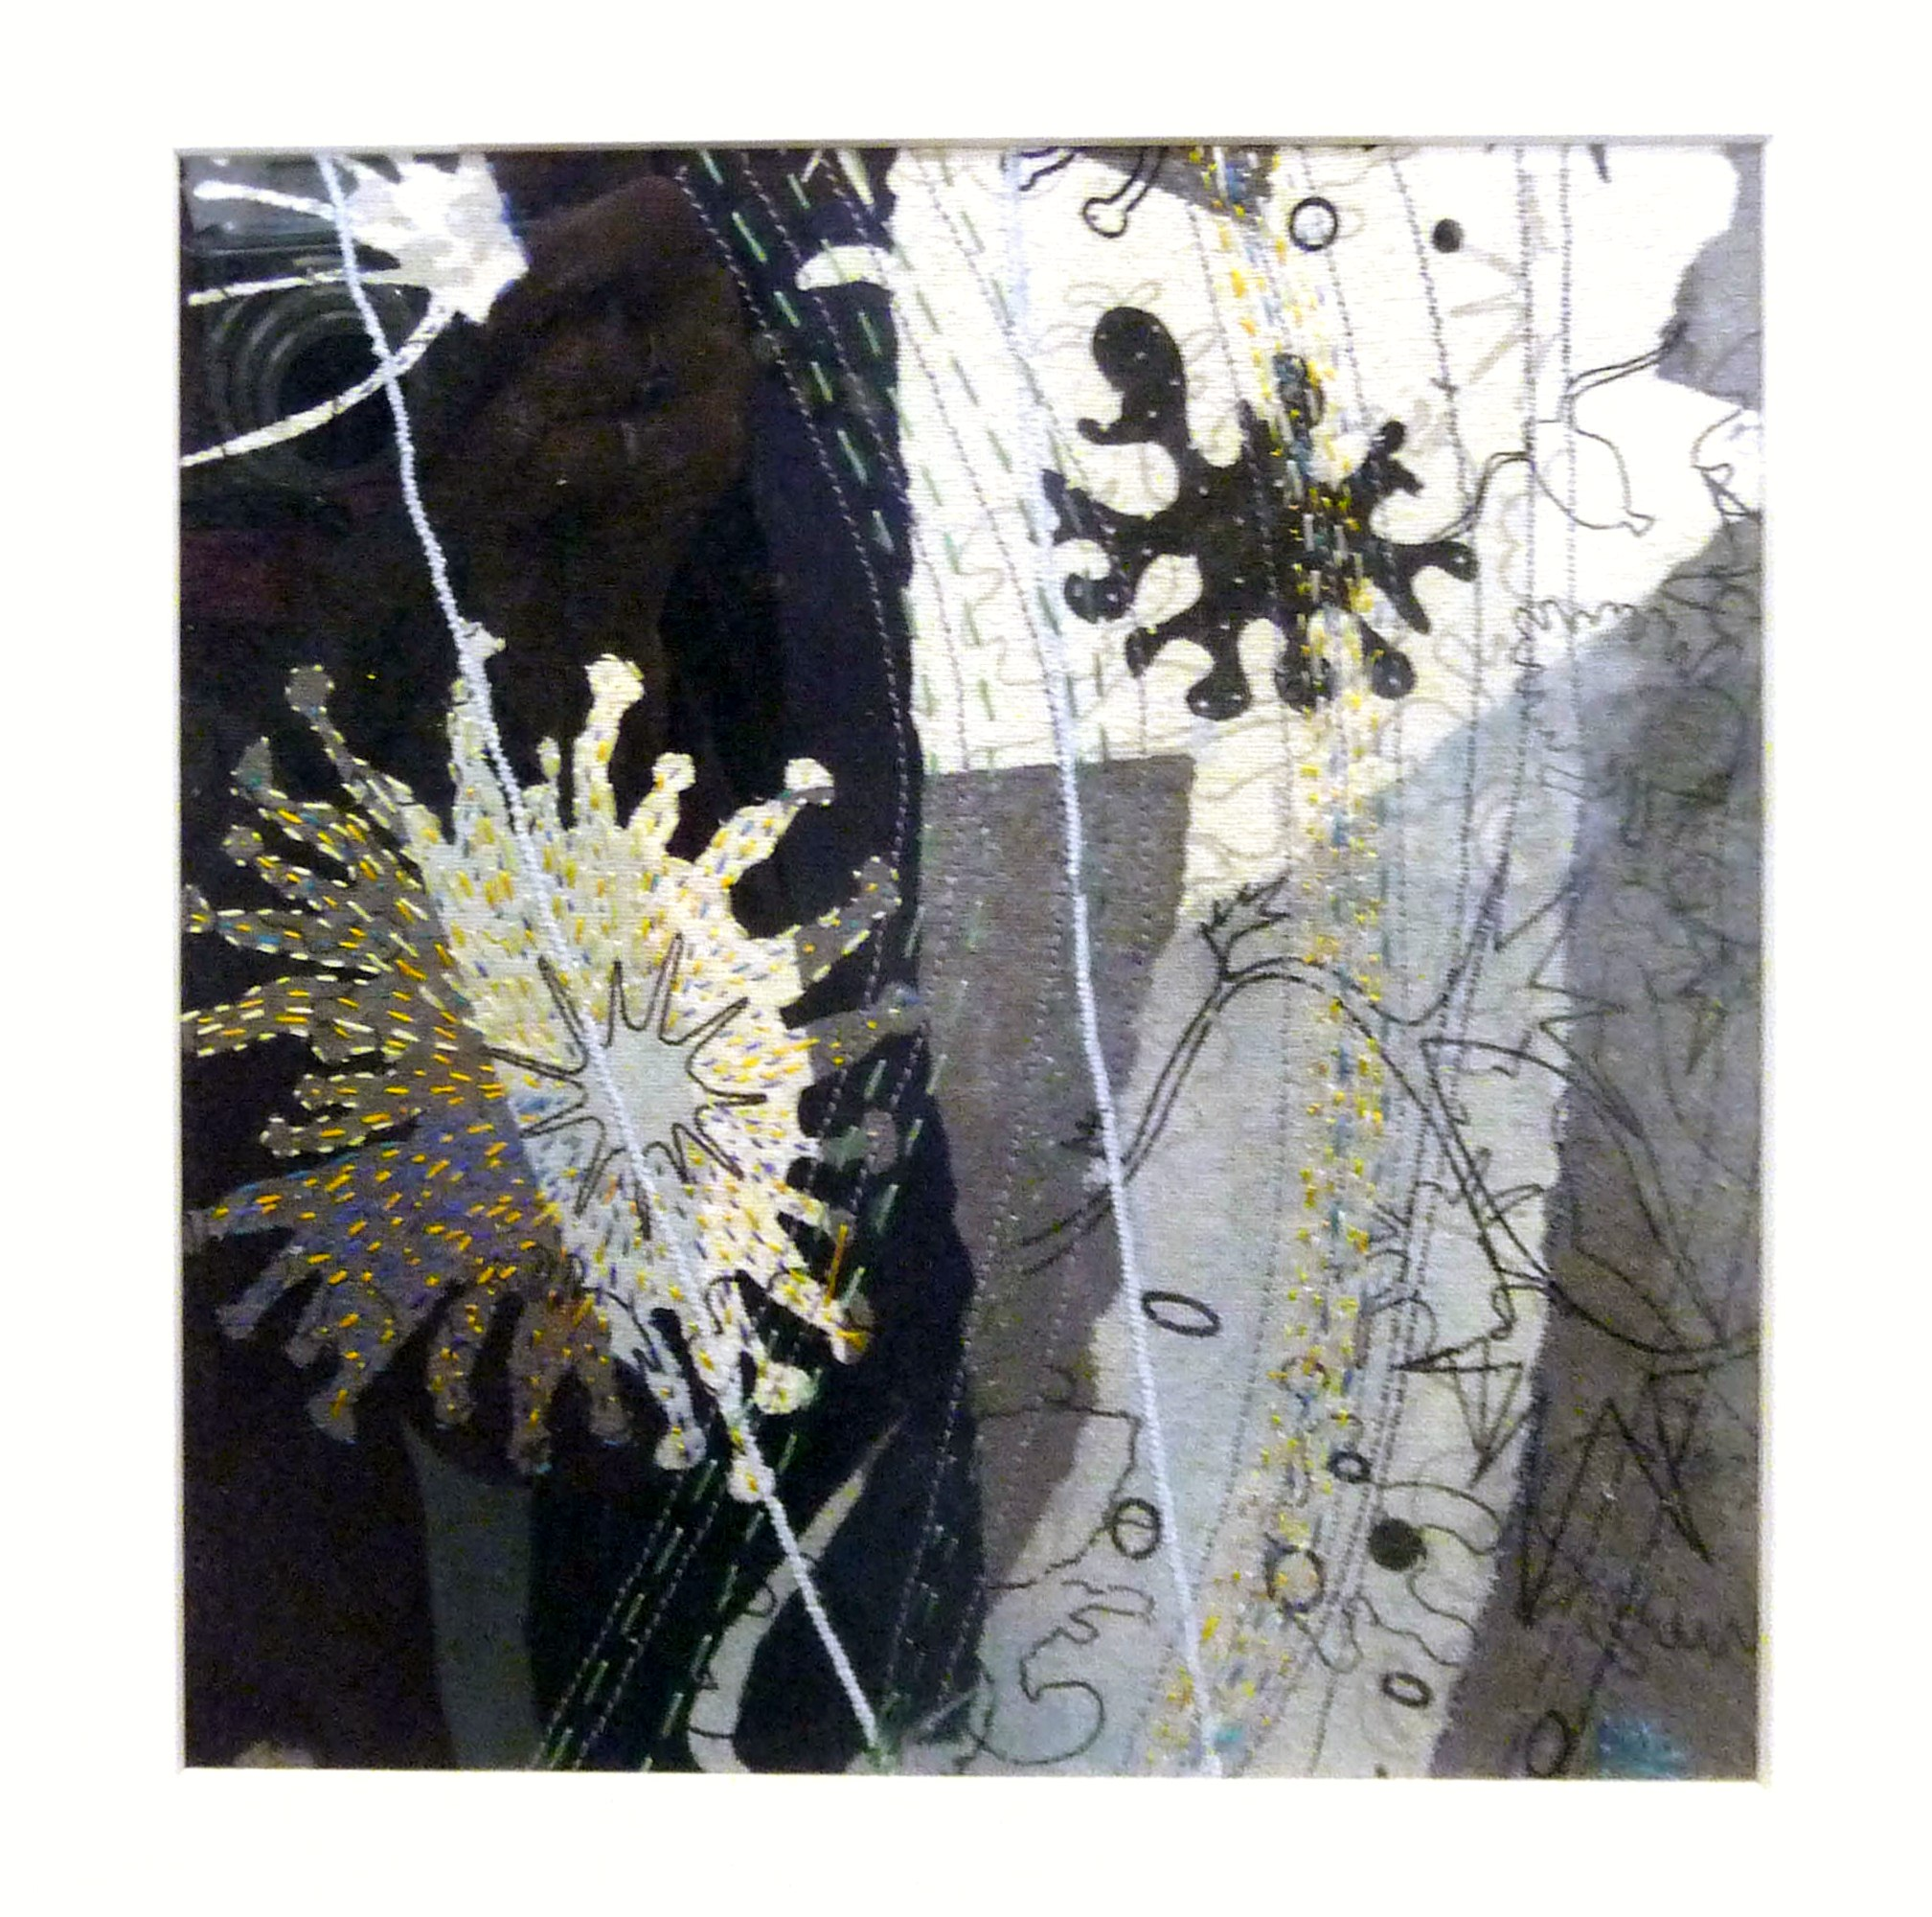 MARINE LIFE by Marion Roberts, stitch and print